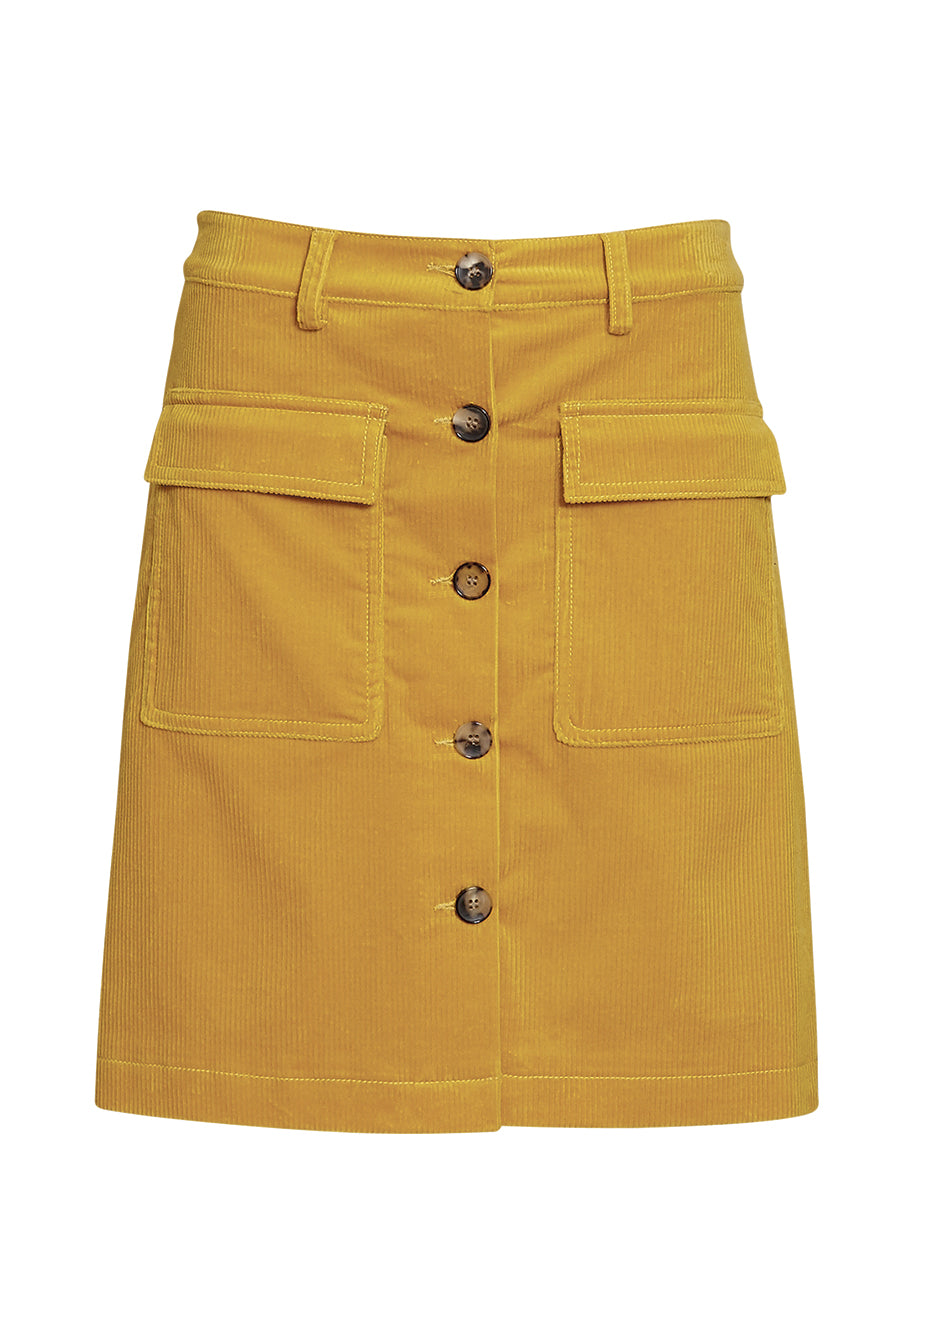 Yellow Corduroy Skirt